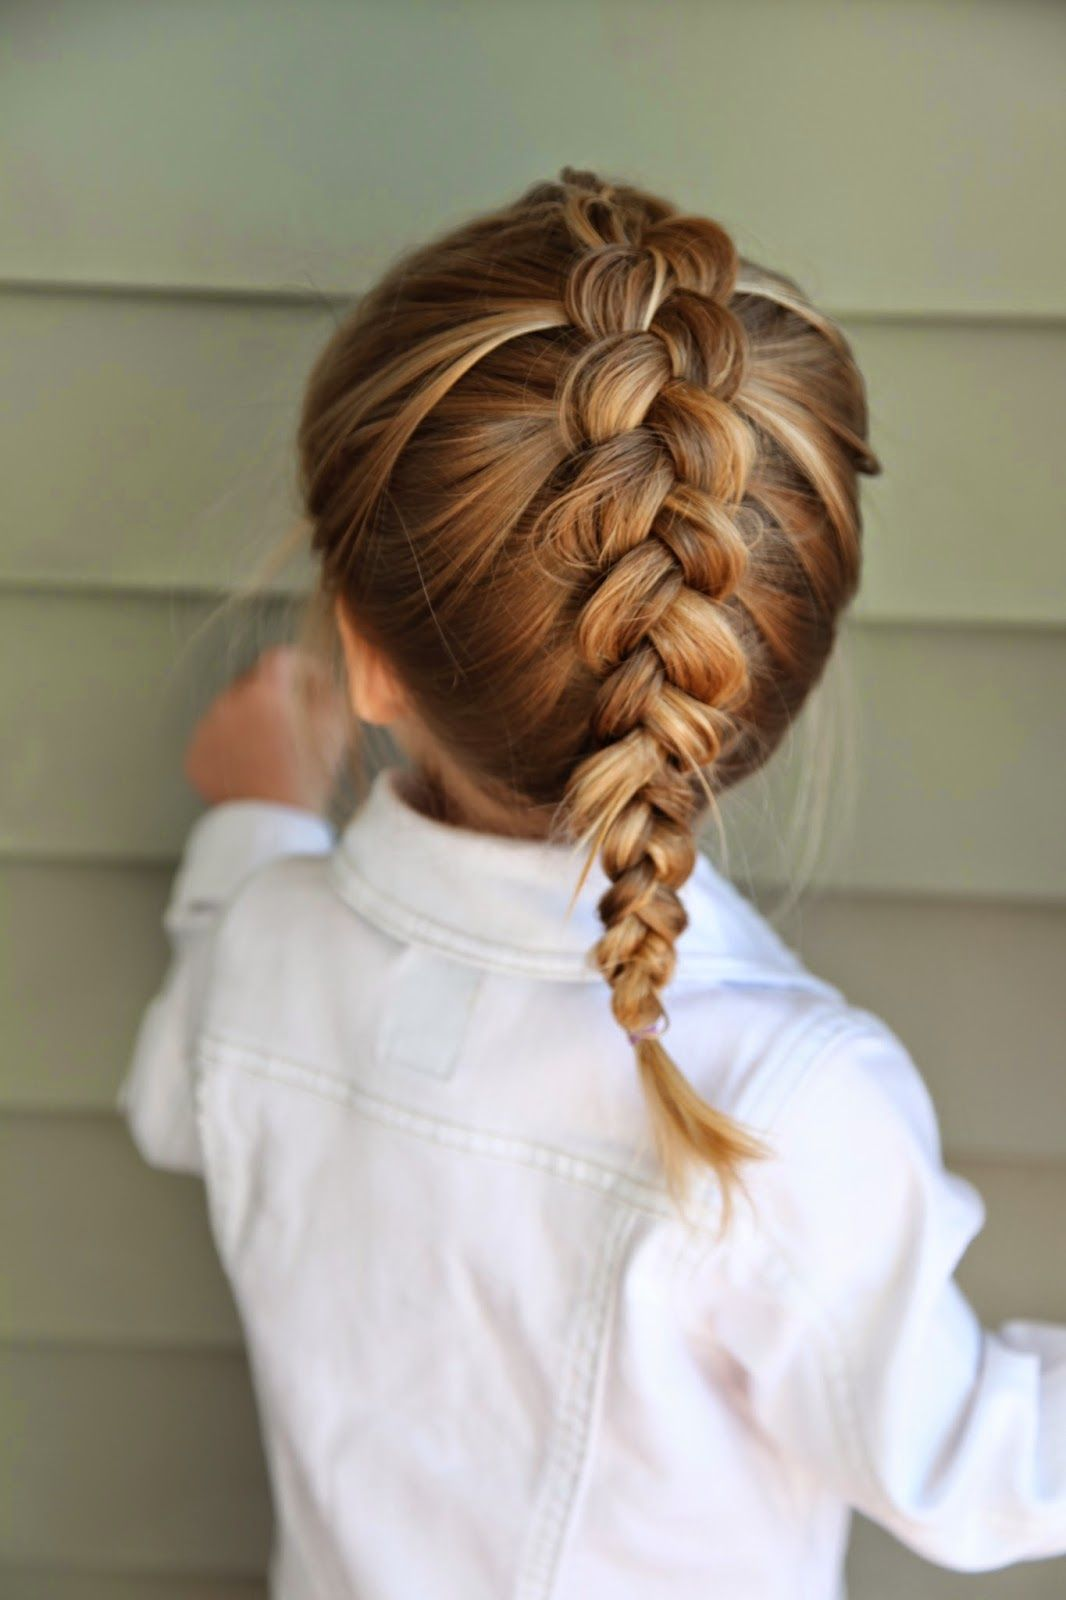 The Dutch Braid This Braid Is Just Like A French Braid, But Instead Of